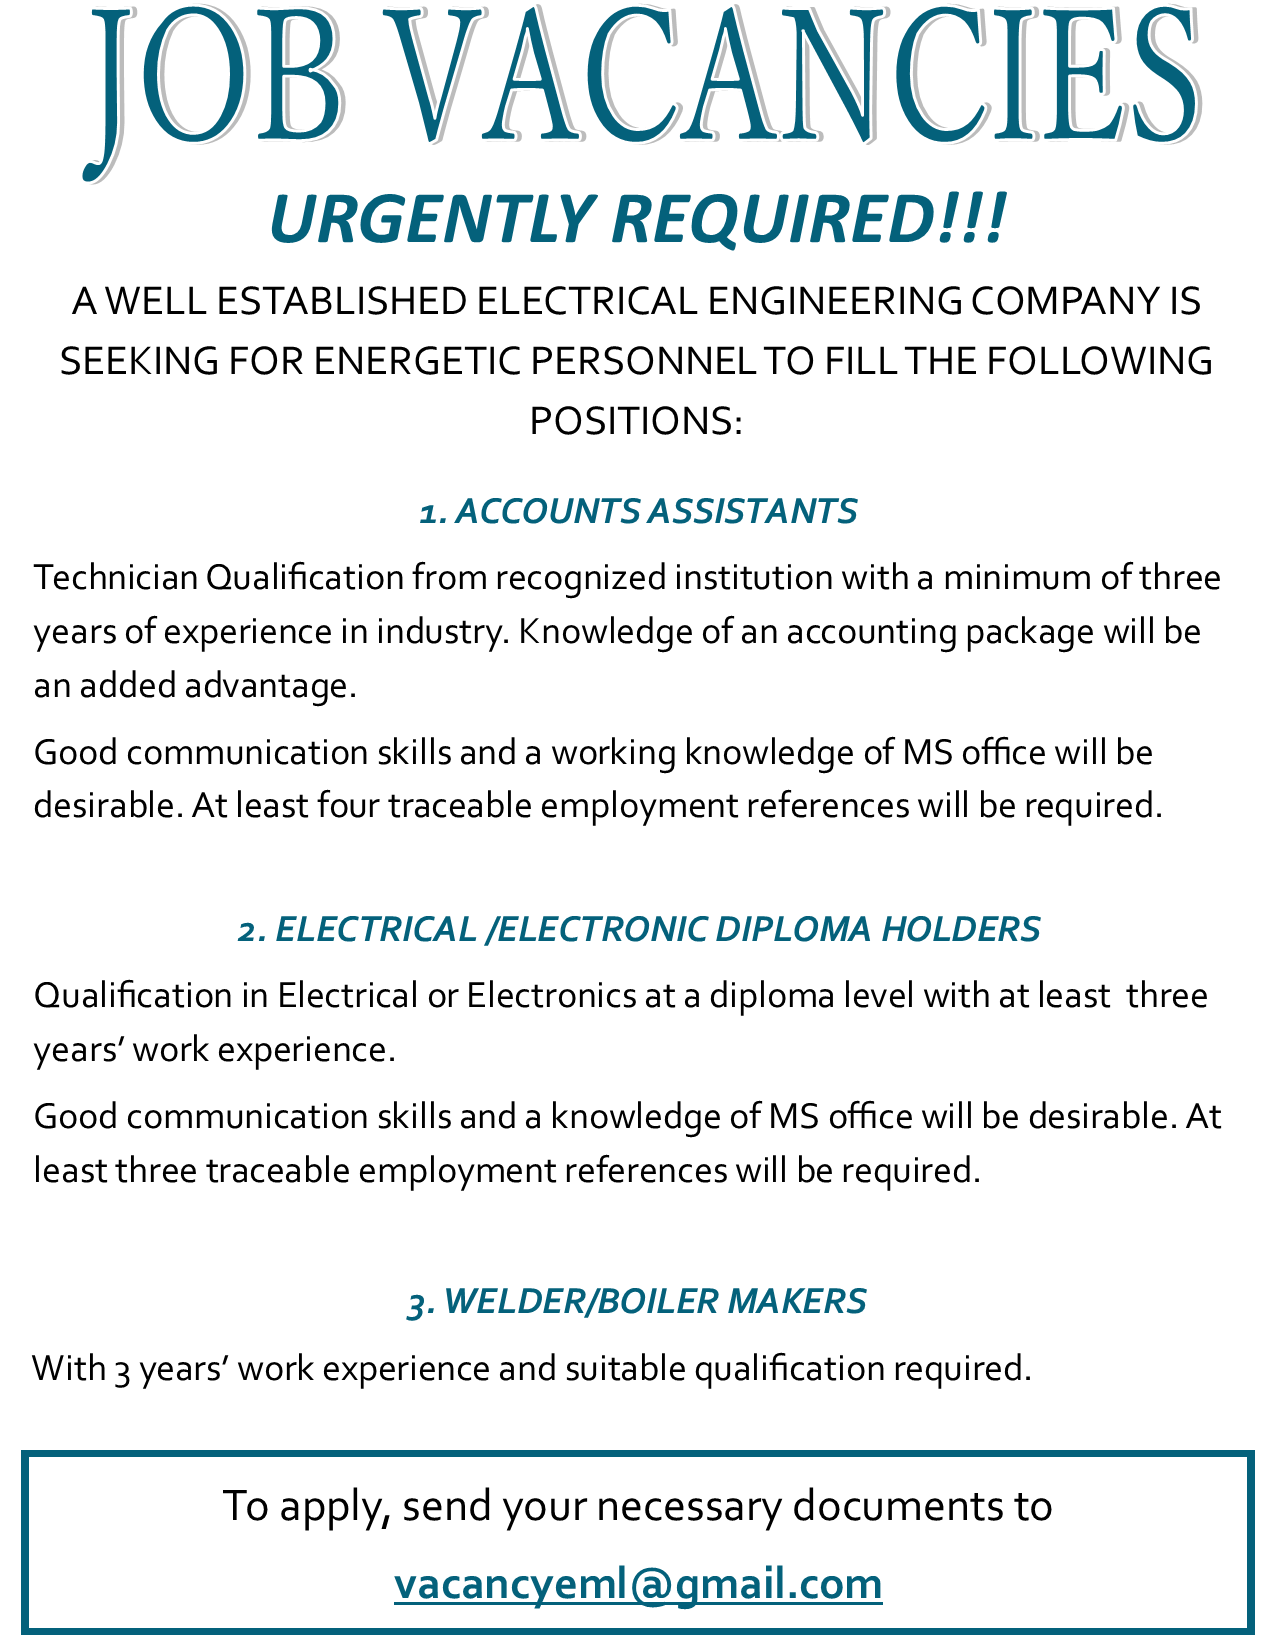 09 05 2017 - JOB VACANCIES » Ad-dicts Ads! Zambia - In your